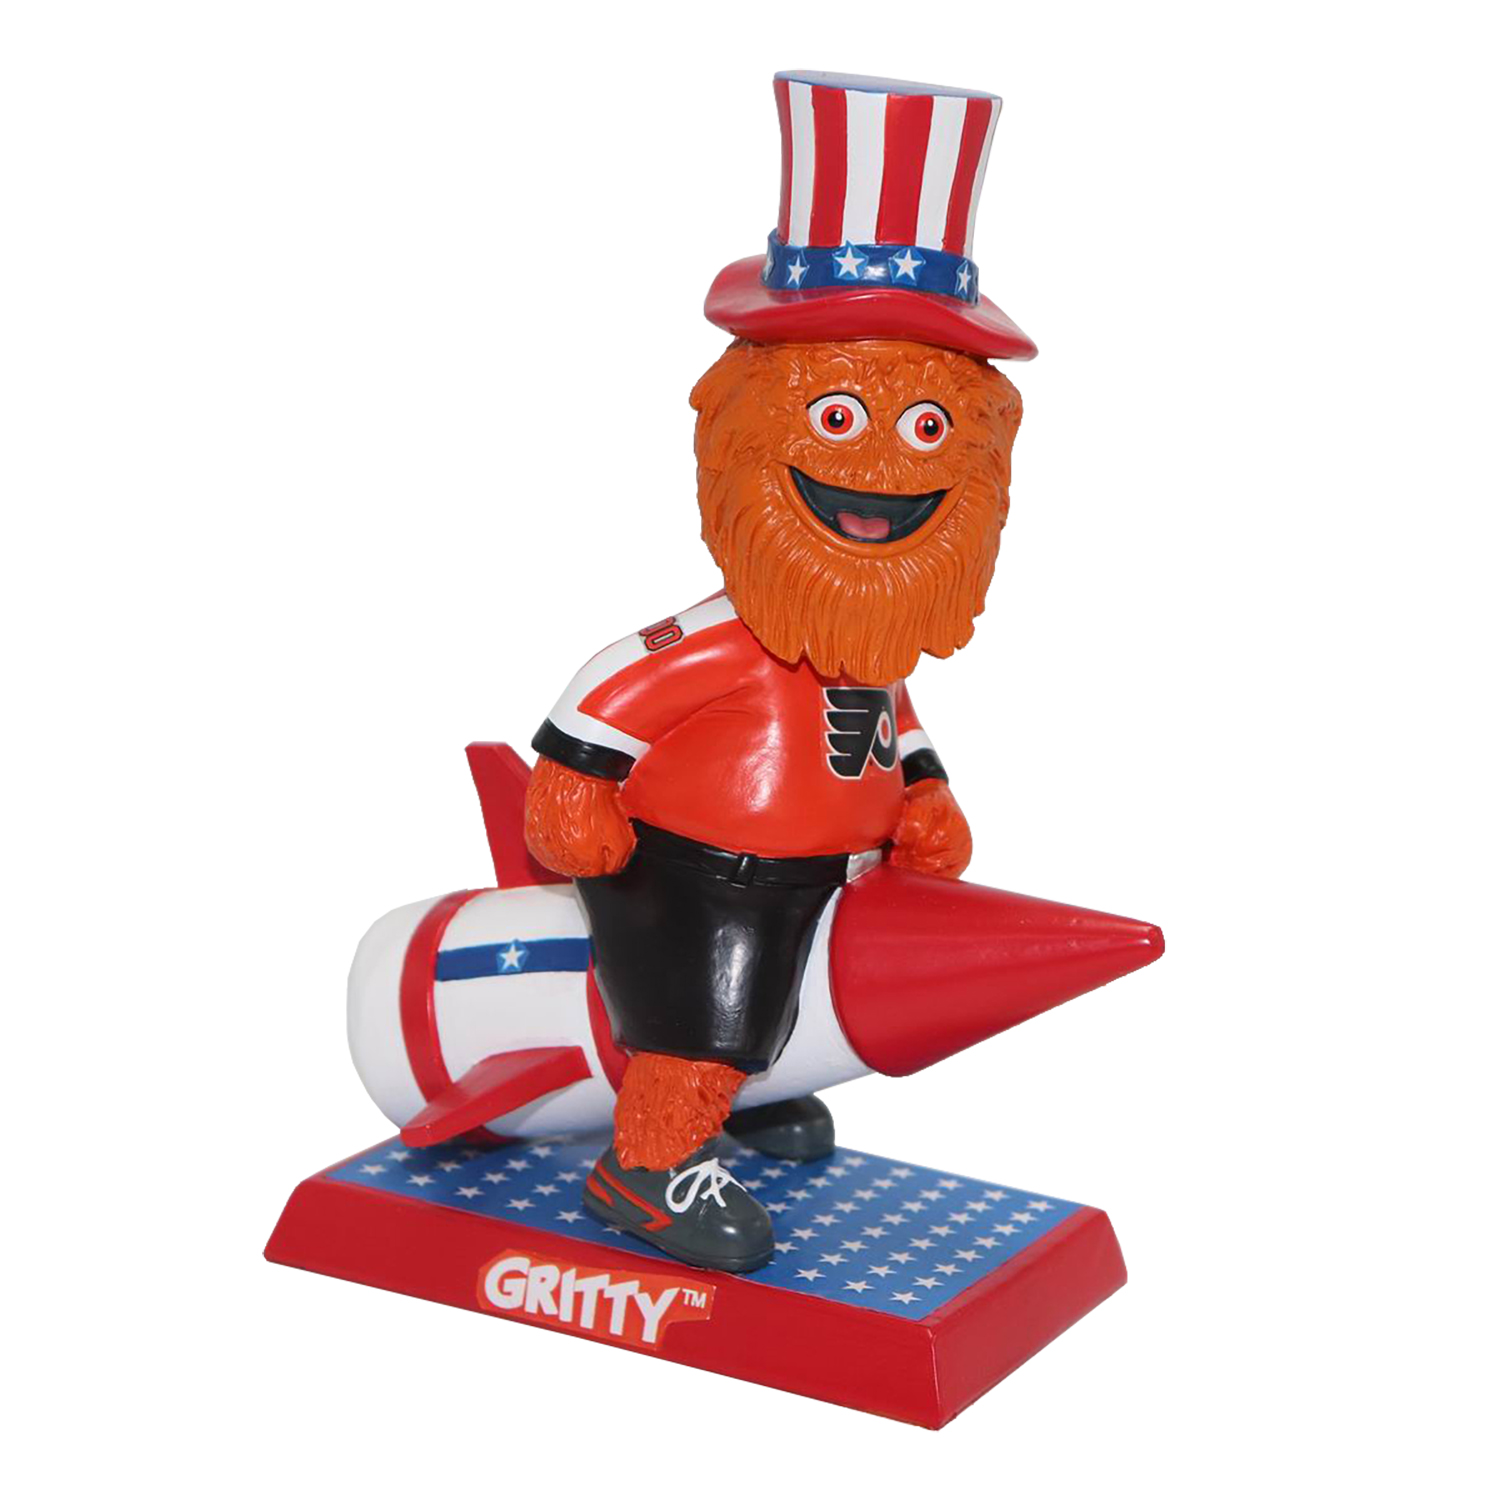 Philadelphia Flyers 4th of July Gritty Mascot Bobblehead